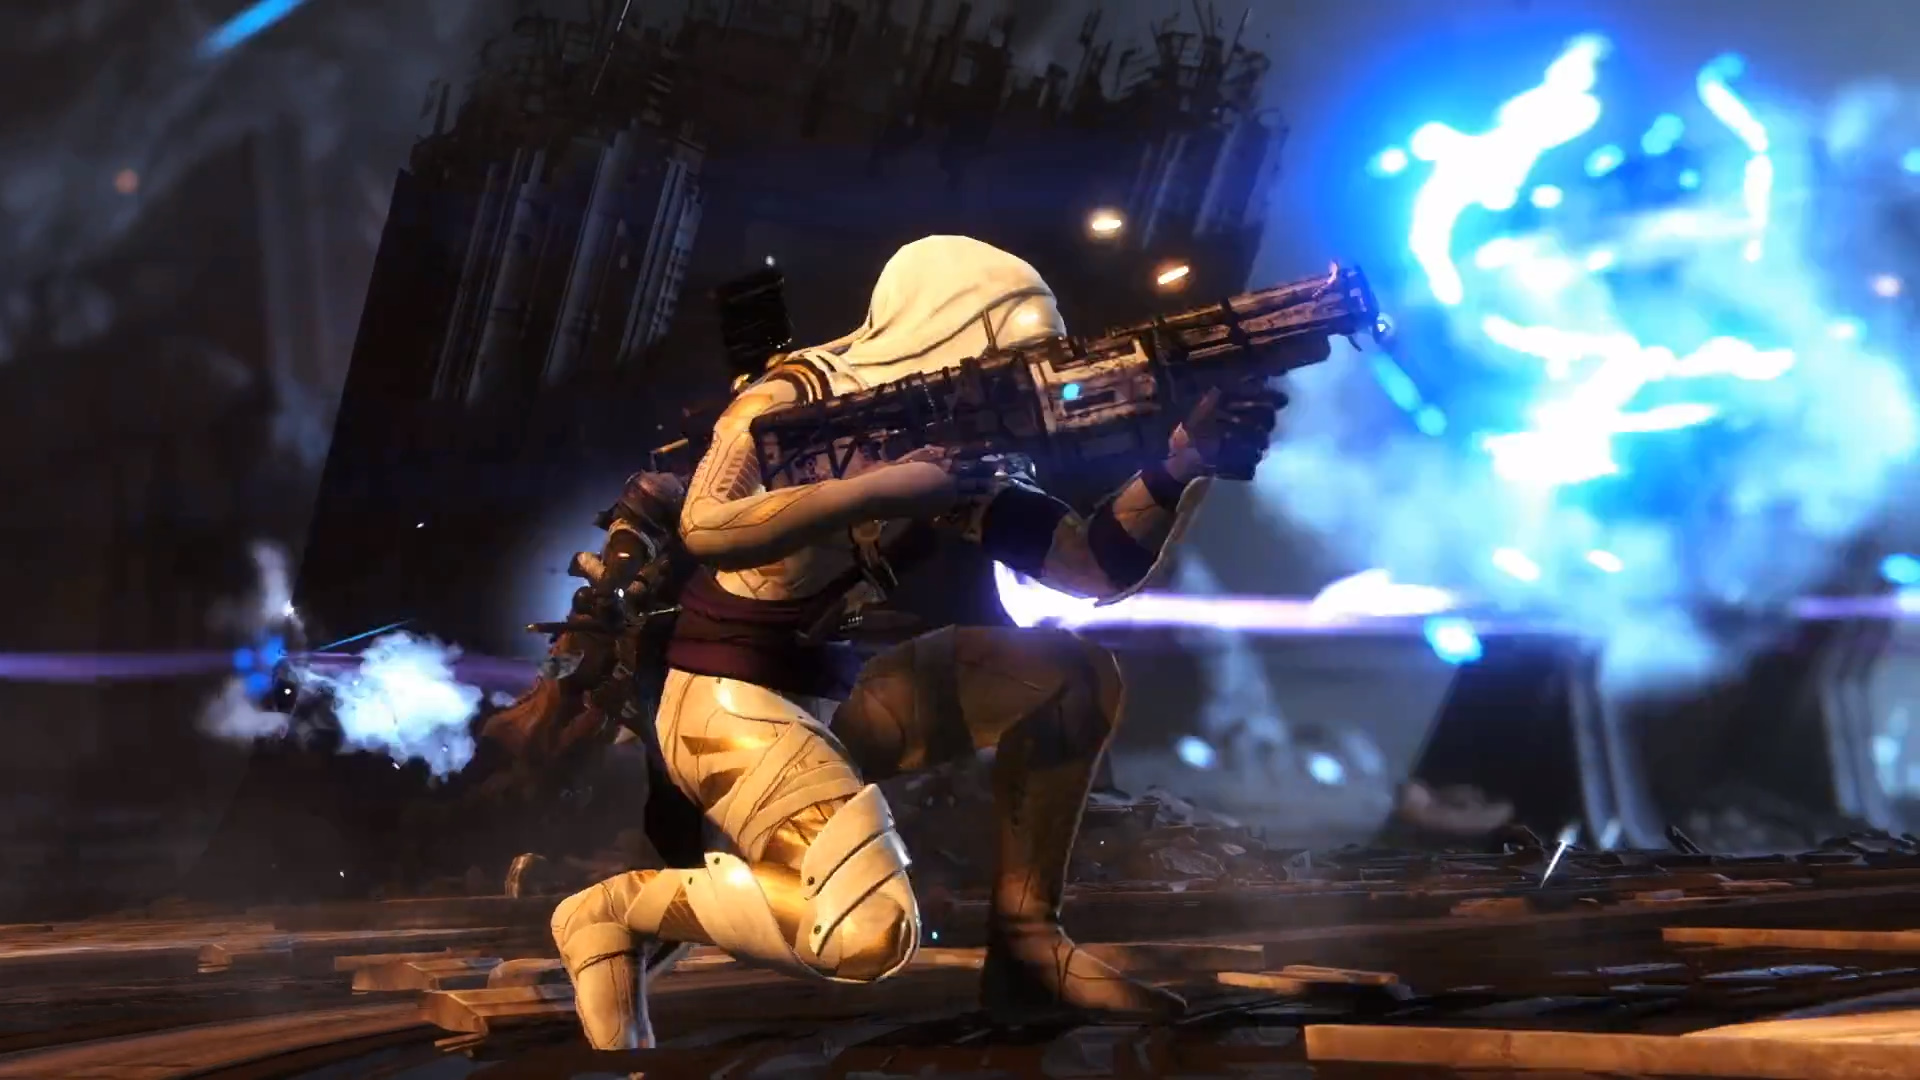 Destiny 2 will be removed from Battle net when it hits Steam | PCGamesN